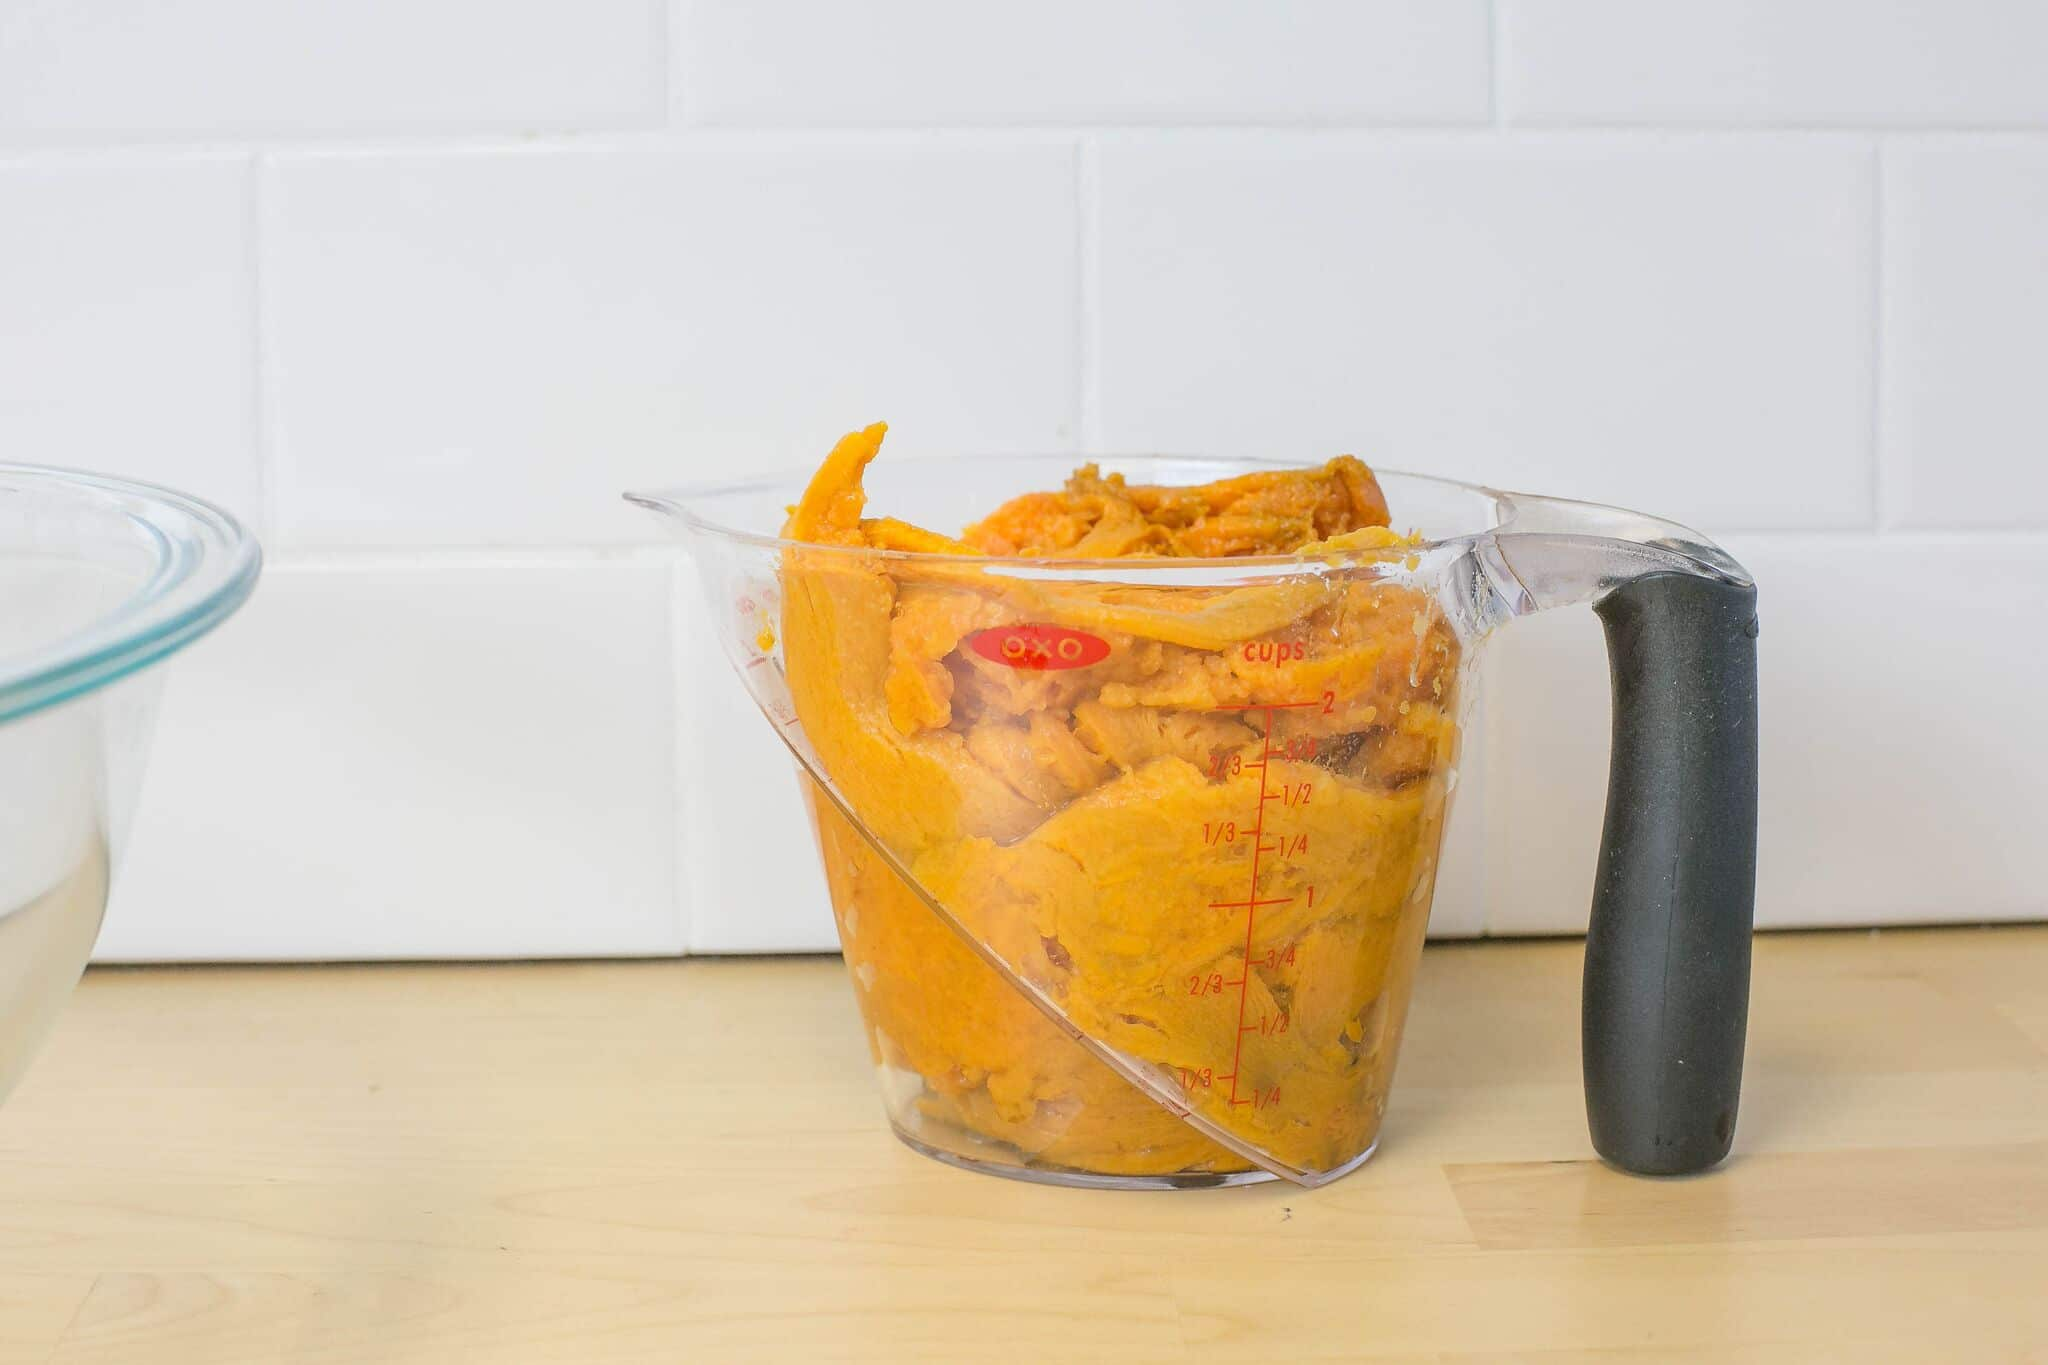 Placed cooled, mashed sweet potatoes into large measuring cup.